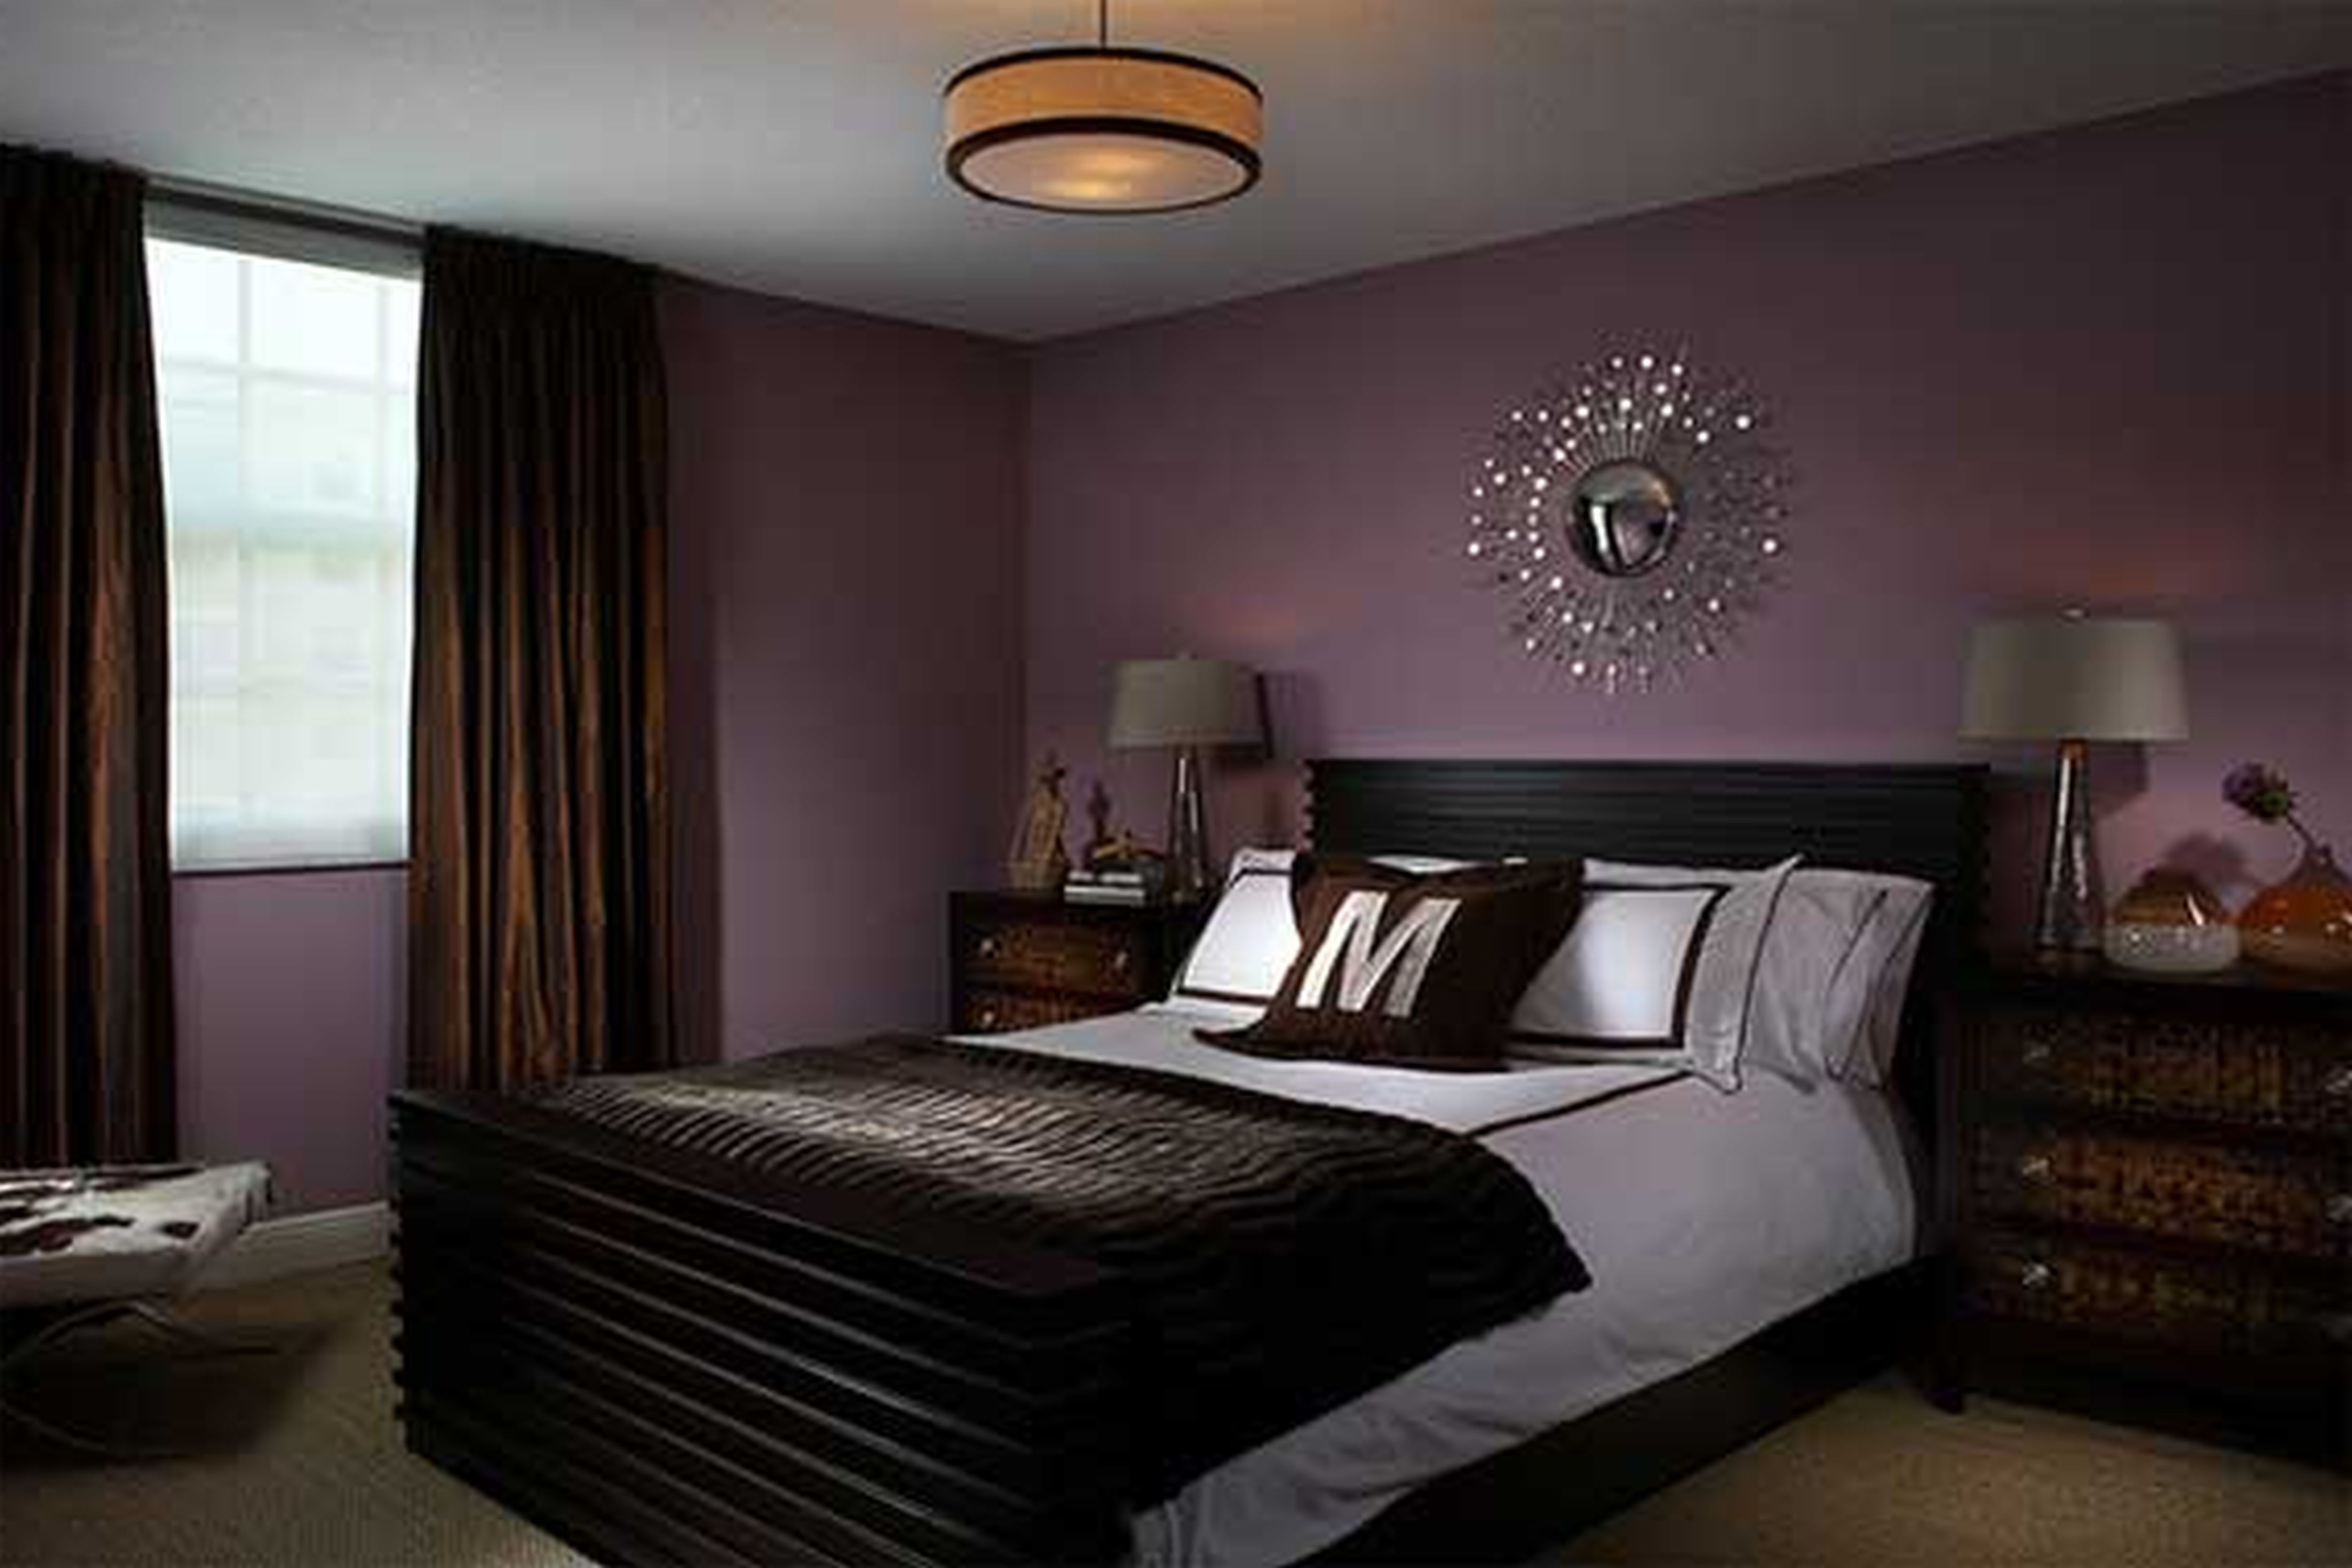 20 Smart Ideas for Small Bedrooms Interior Design Styles